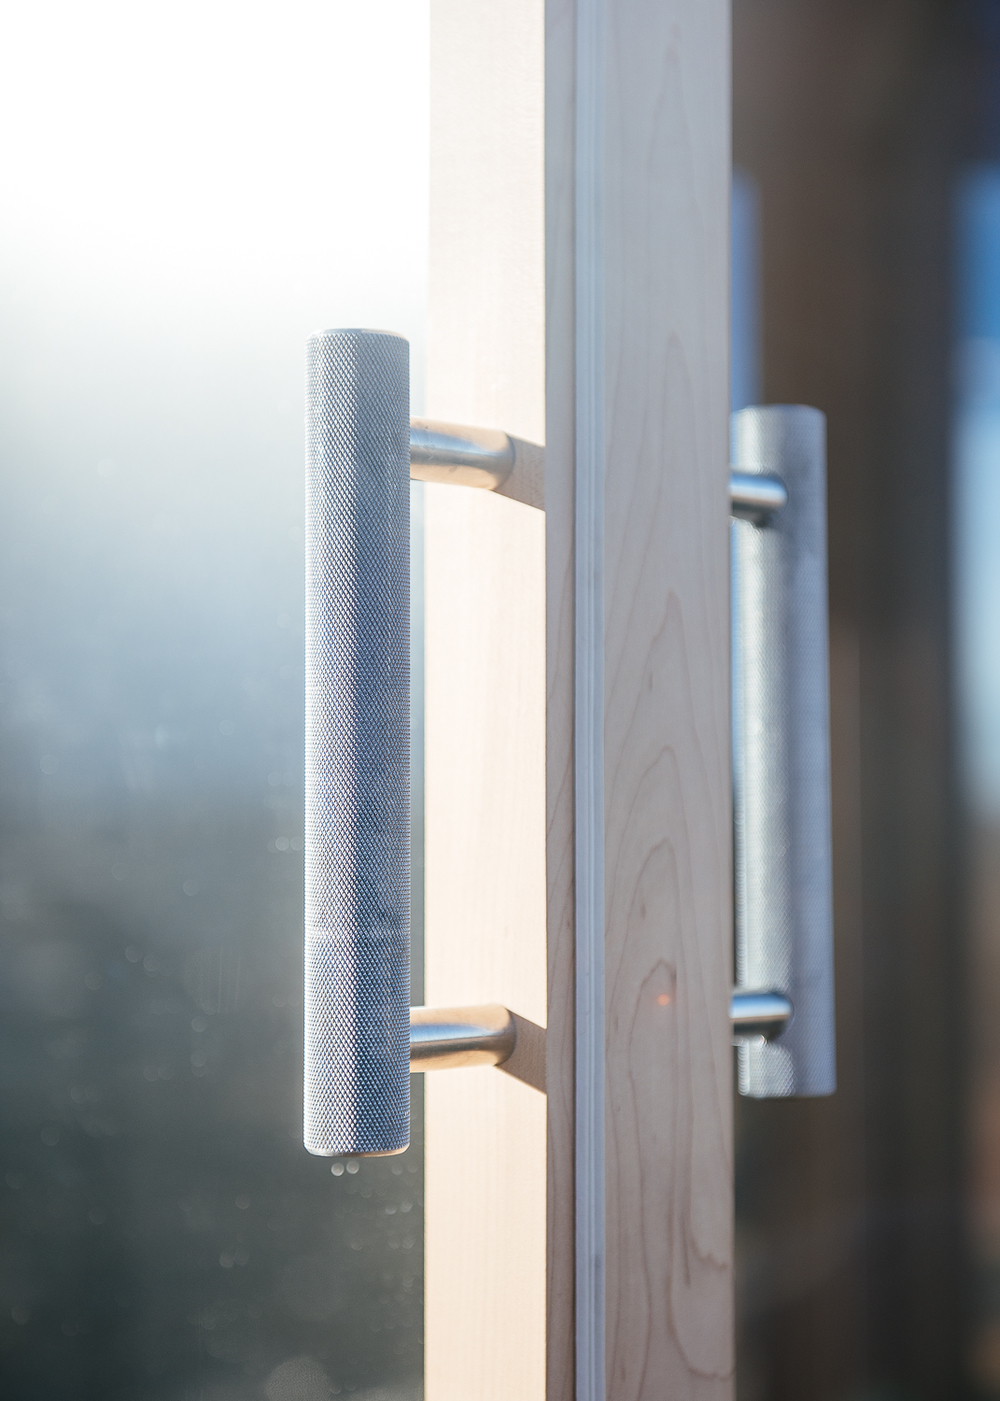 Stainless steel door handle.